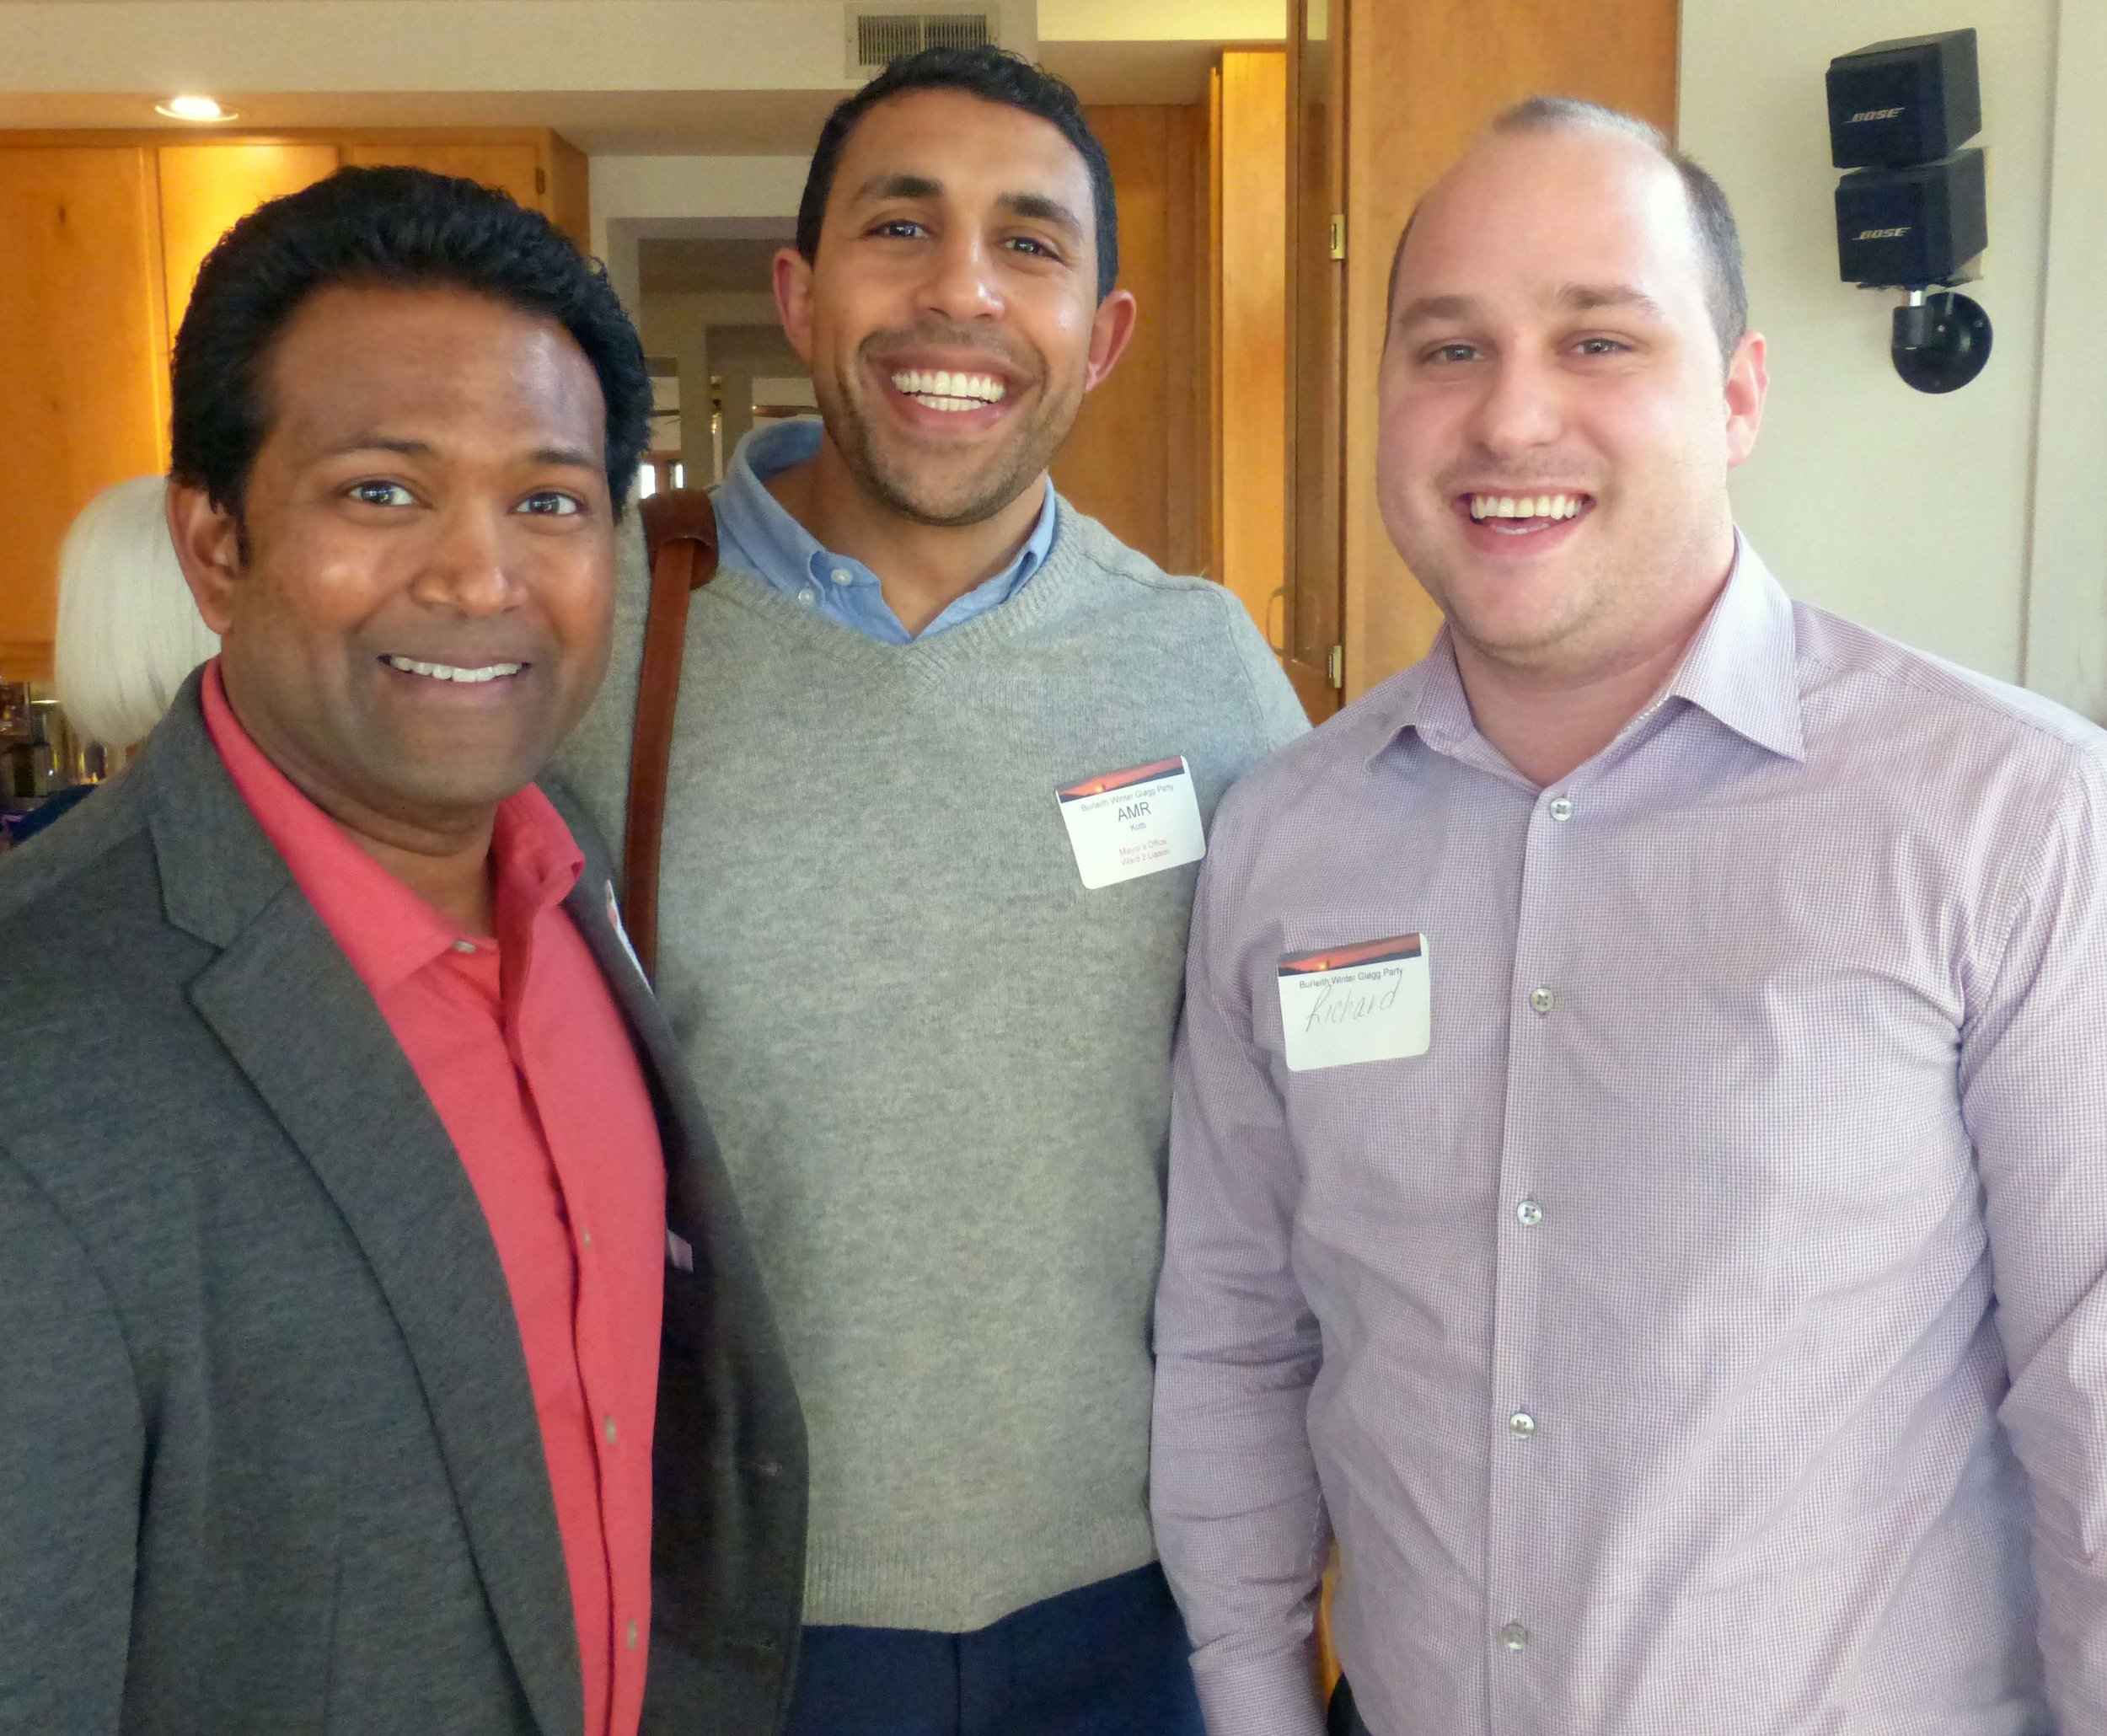 Kishan Putta, Amr Kotb, and Richard Livingstone. Photo by Ann Carper.